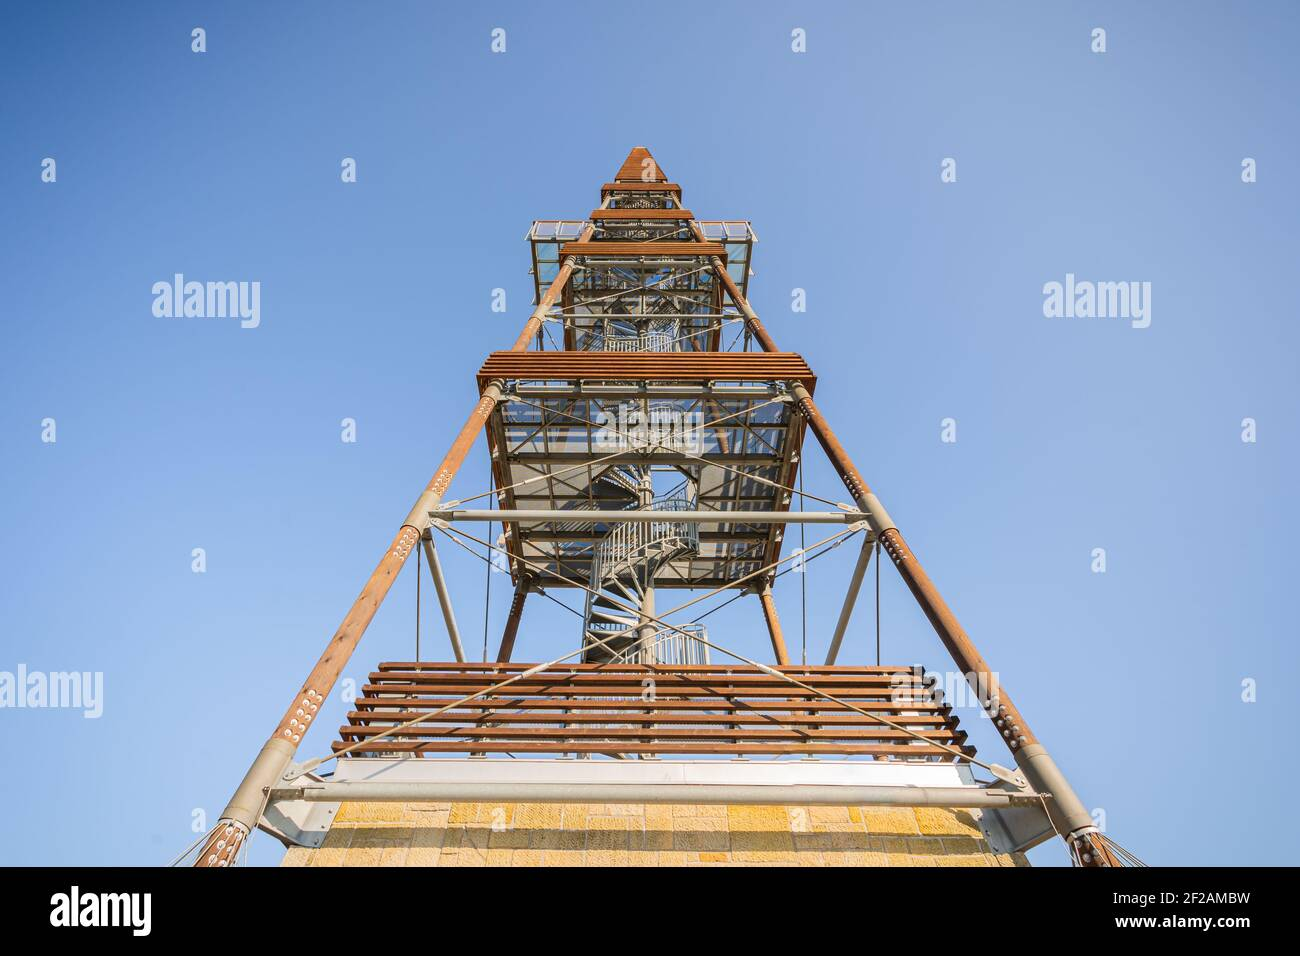 Lookout tower Cizovka is fairly new tower ner Cesky Raj - Czech Paradise. Sunny weather with clear sky. Stock Photo